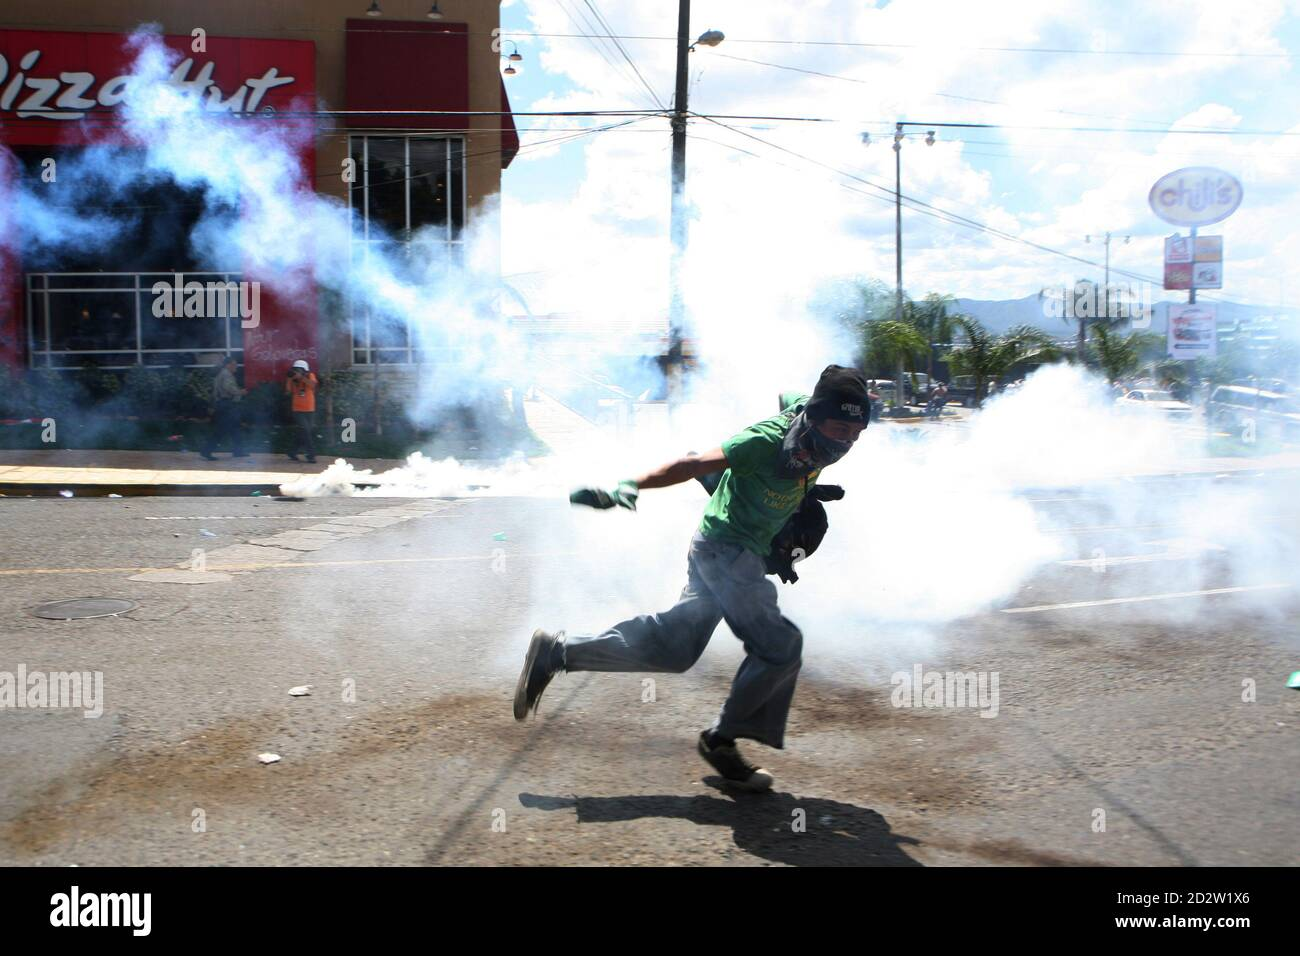 A supporter of Honduras' ousted President Manuel Zelaya kicks away a teargas canister during a protest near the site of negotiations to end the political crisis, in Tegucigalpa October 29, 2009. Zelaya and de facto rulers in power since a June coup returned to the negotiating table on Thursday, under pressure from U.S. officials who said time is running out to resolve the political crisis. REUTERS/Oswaldo Rivas (HONDURAS POLITICS CONFLICT) Stock Photo